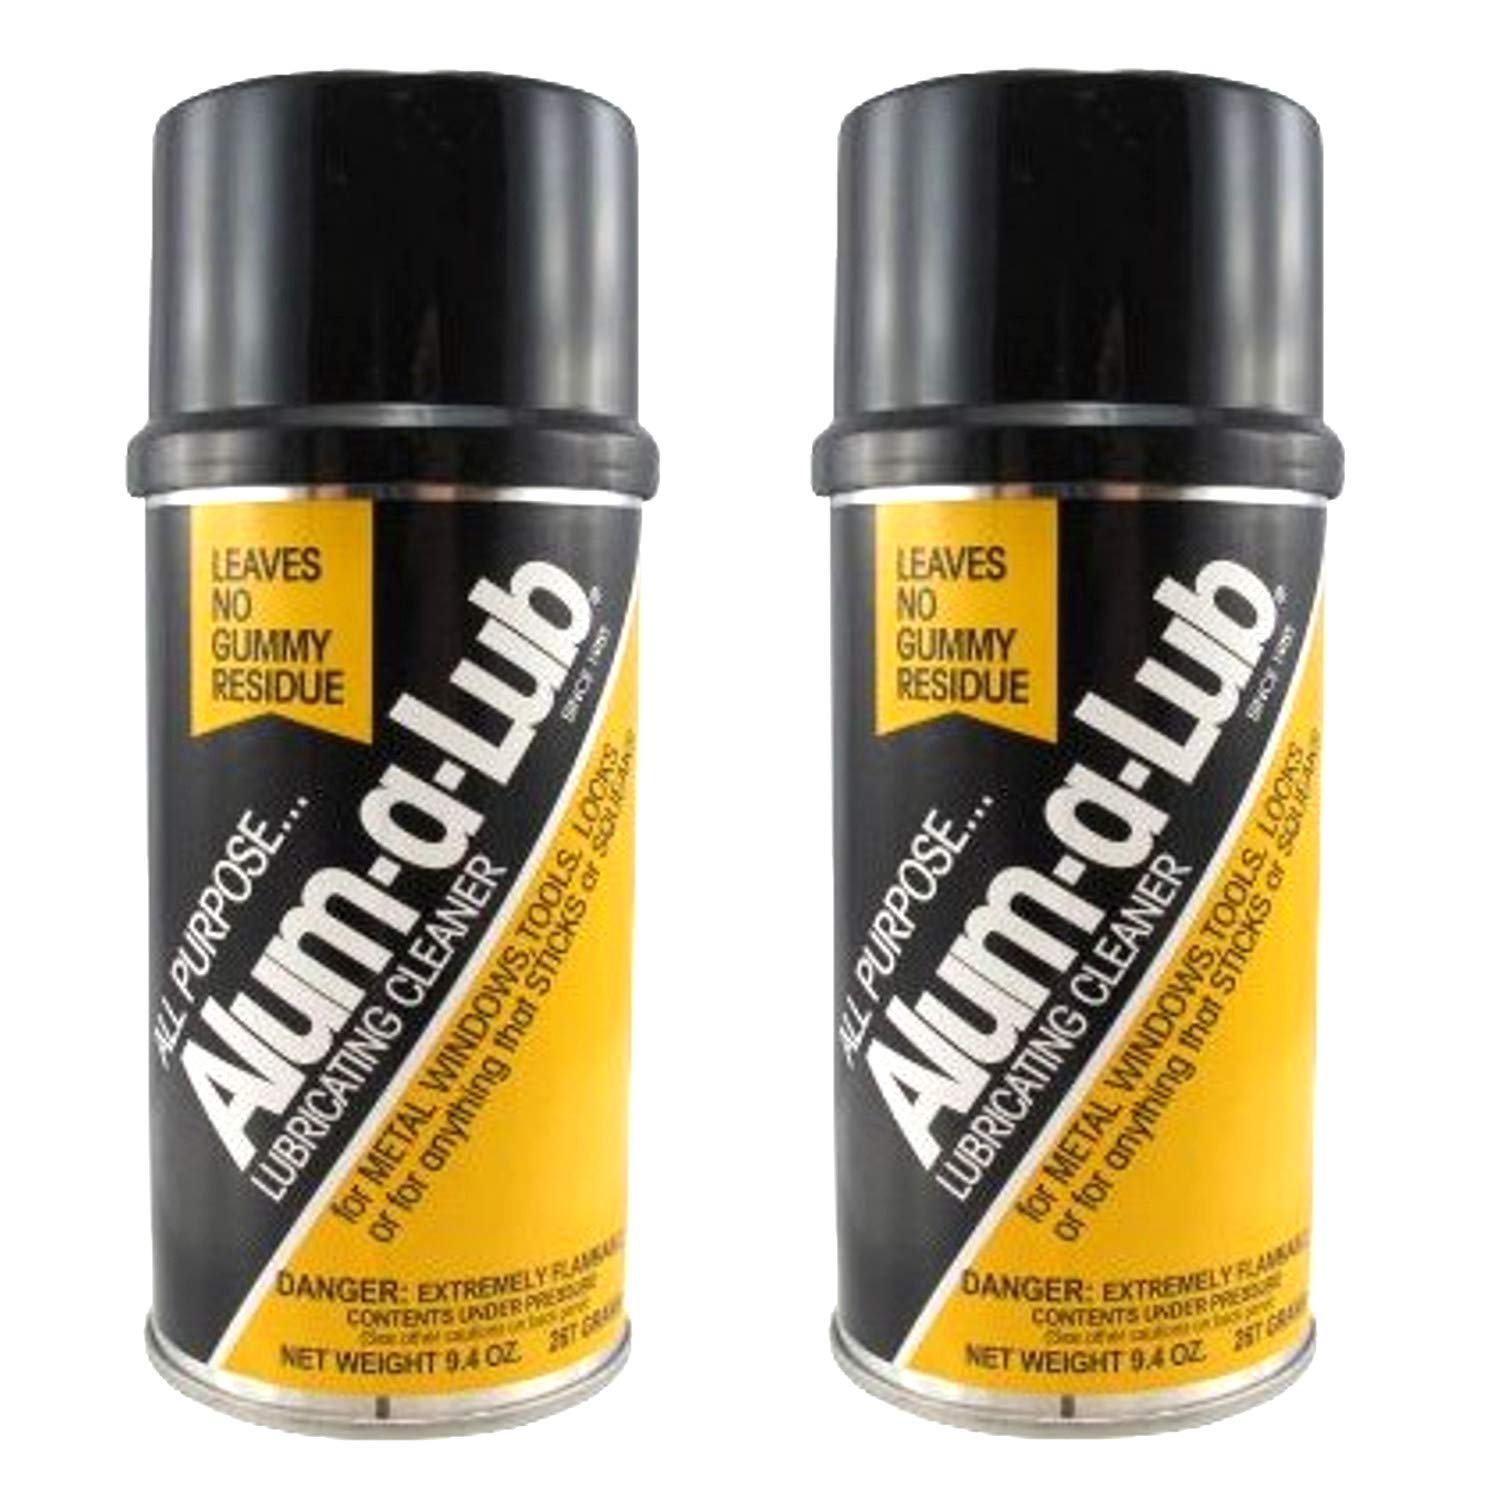 Alum-A-Lub Lubricating Cleaner Spray 9.4 oz. (Pack of 2)